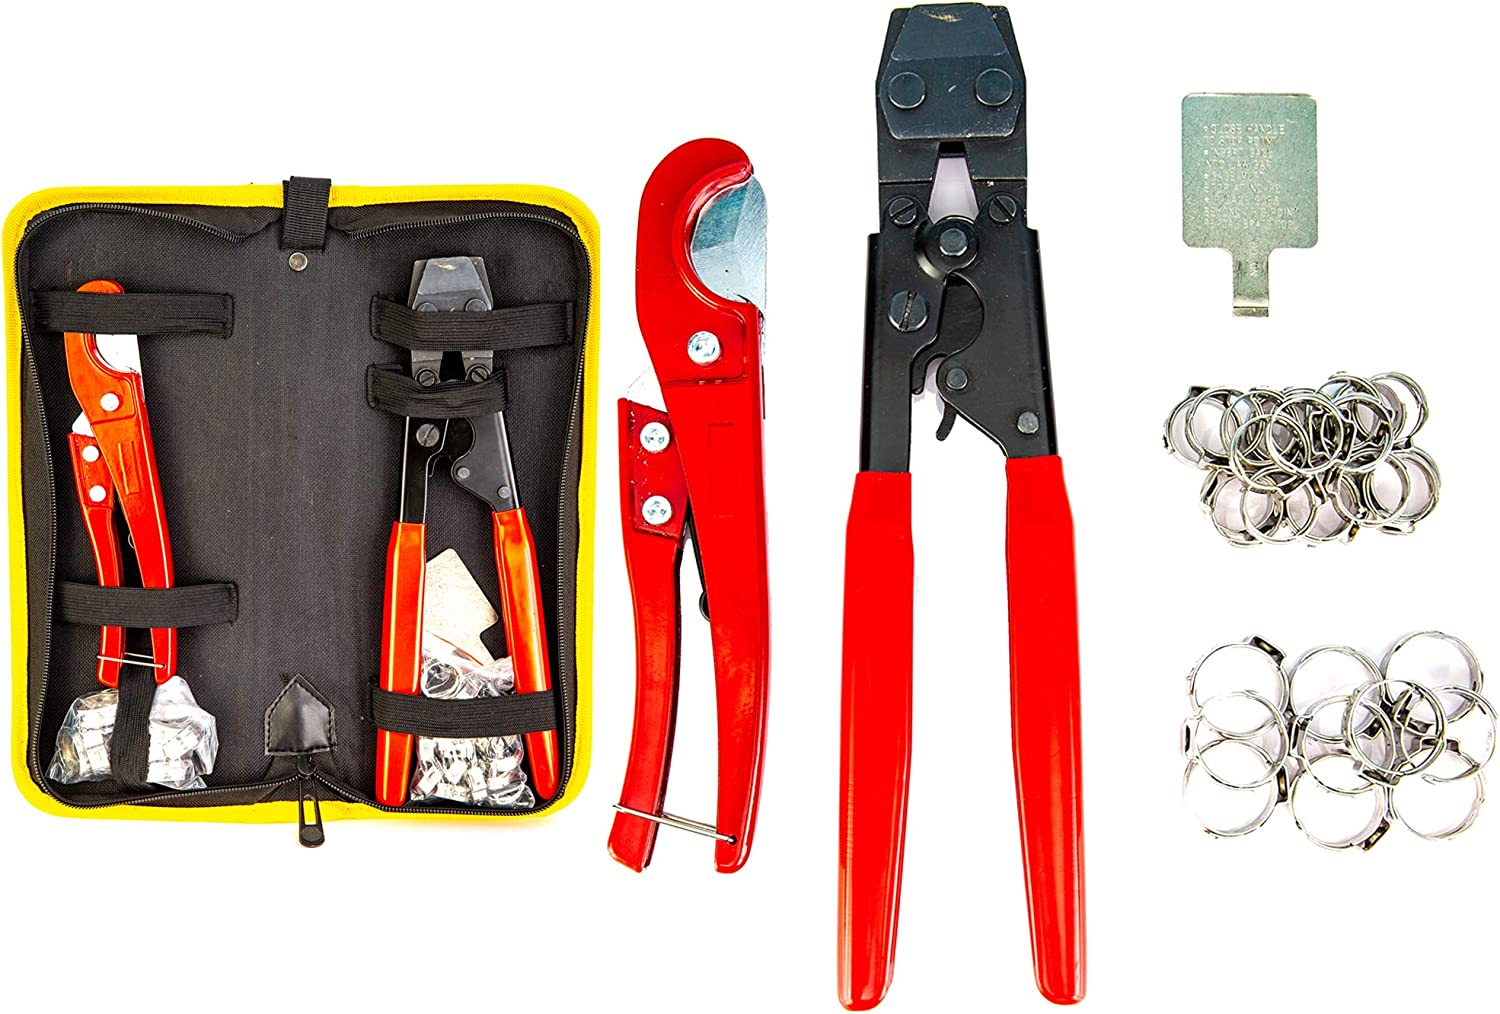 """Pex Crimping Clamp Cinch Tool and Pipe Hose Cutter Meets ASTM 2098, Pipe Fitting Tool Kit for Stainless Steel Clamps Sizes from 3/8"""" to 1"""" with 20pcs 1/2"""" and 10 pcs 3/4"""" Clamps set with Storage Bag,"""